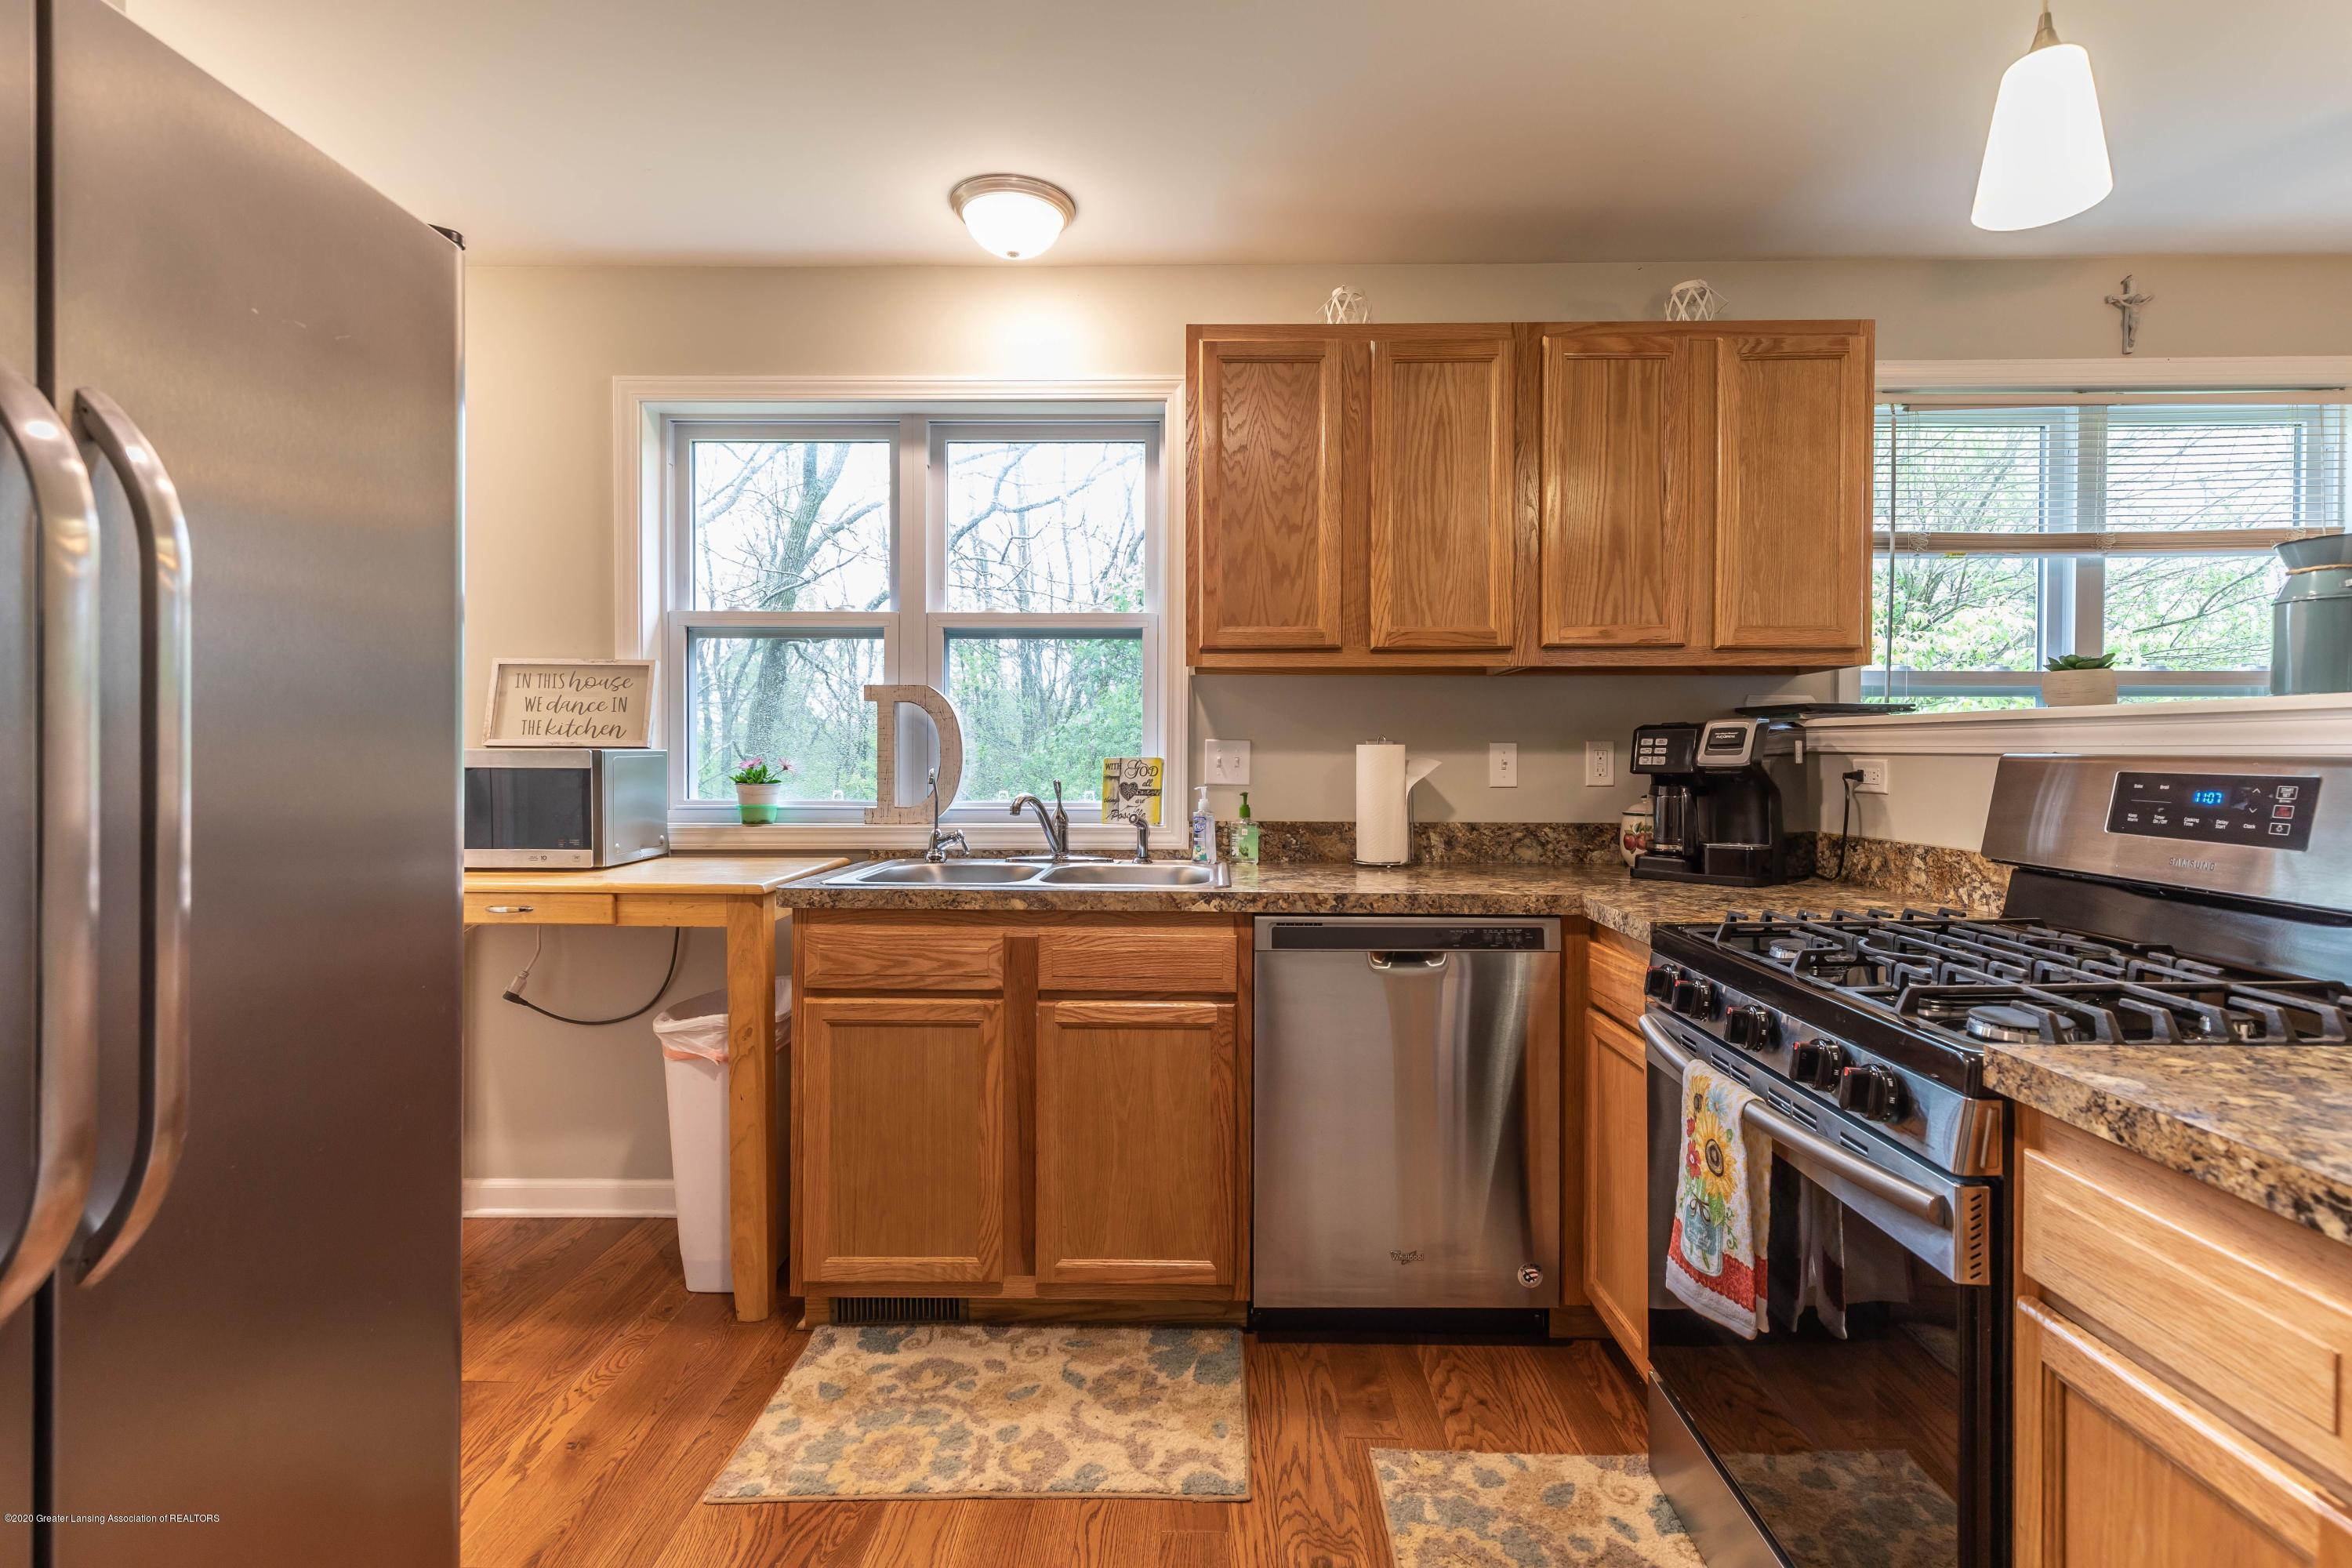 790 Woodworth Rd - Kitchen2 - 11